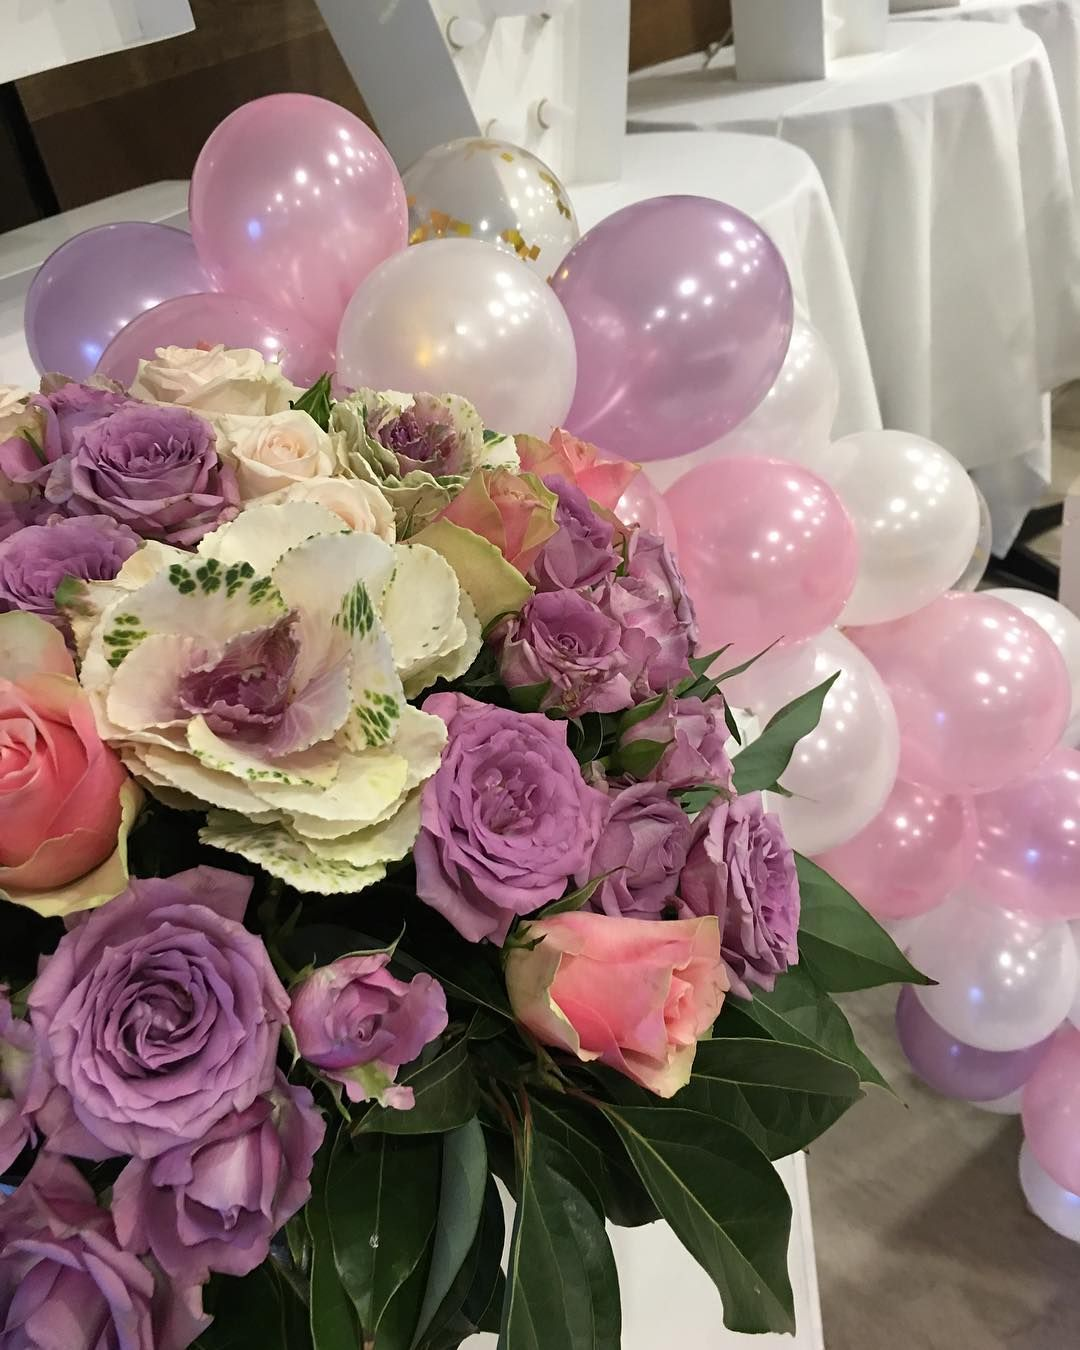 Pretty Christening setup today kaitlintannous Flowers and